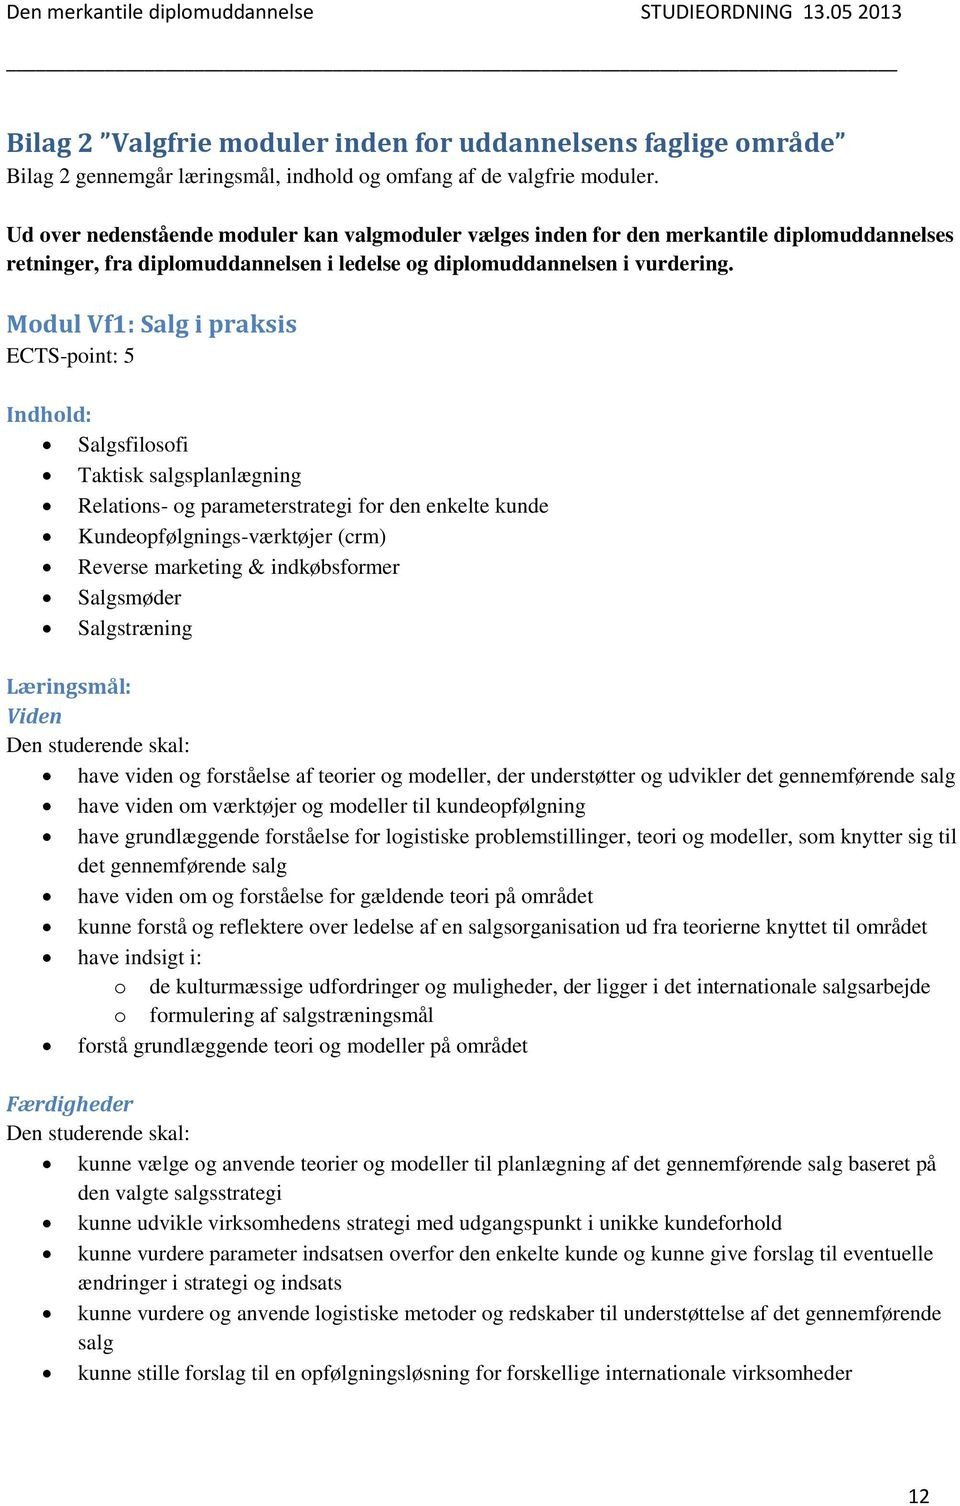 Modul Vf1: Salg i praksis ECTS-point: 5 Indhold: Salgsfilosofi Taktisk salgsplanlægning Relations- og parameterstrategi for den enkelte kunde Kundeopfølgnings-værktøjer (crm) Reverse marketing &